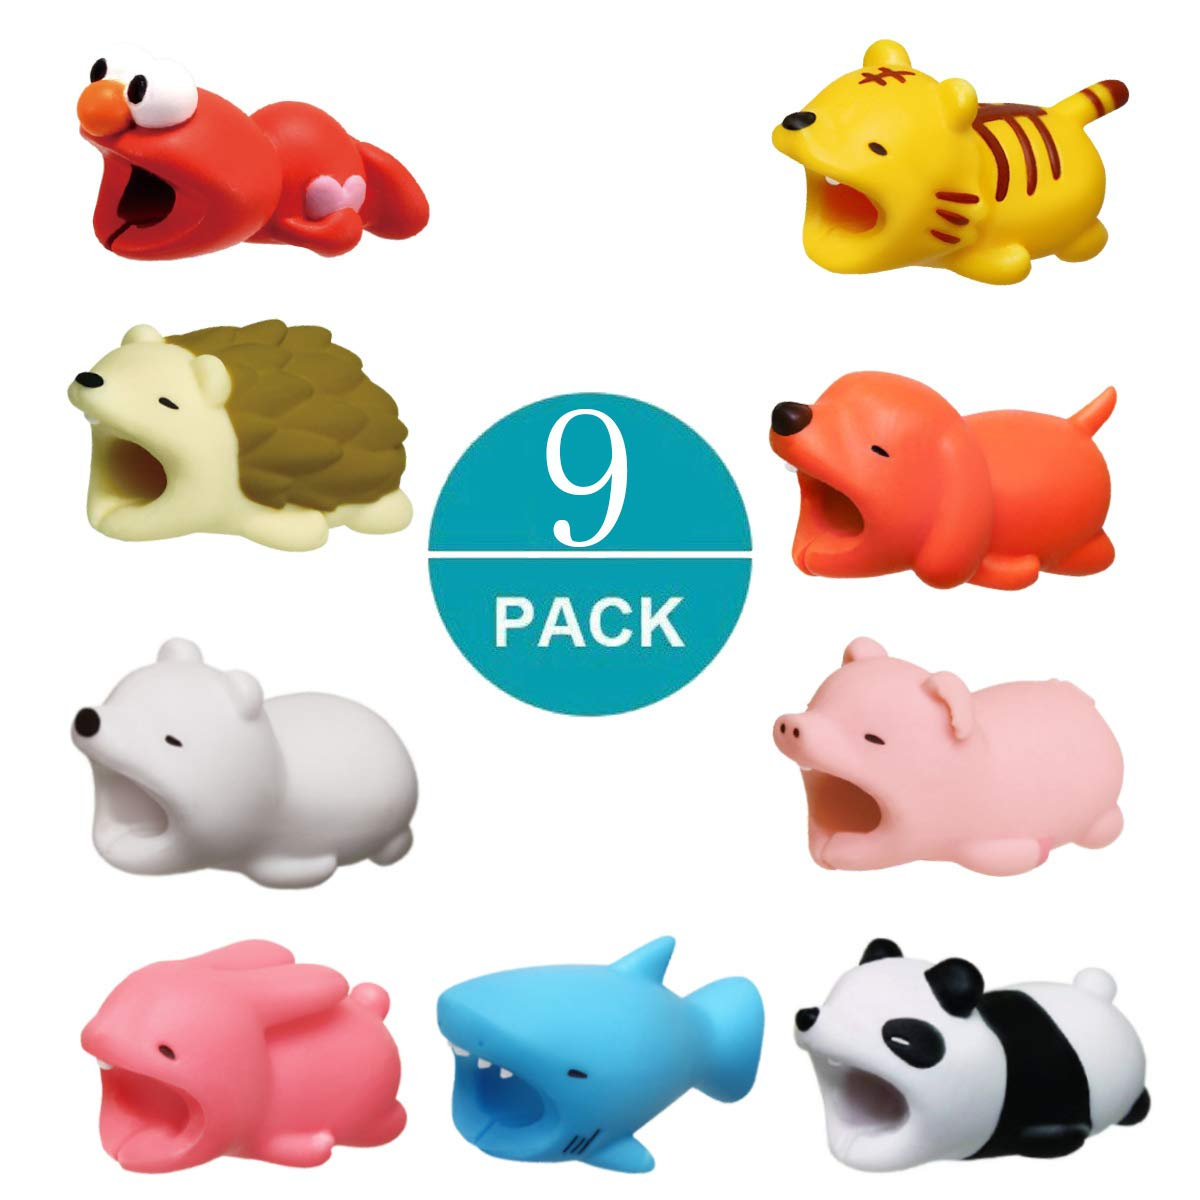 Newseego Compatible iPhone Cable Protector Charger Saver Cable Chewers Cable Cute Animal Bite Cable Accessory-6 Pack